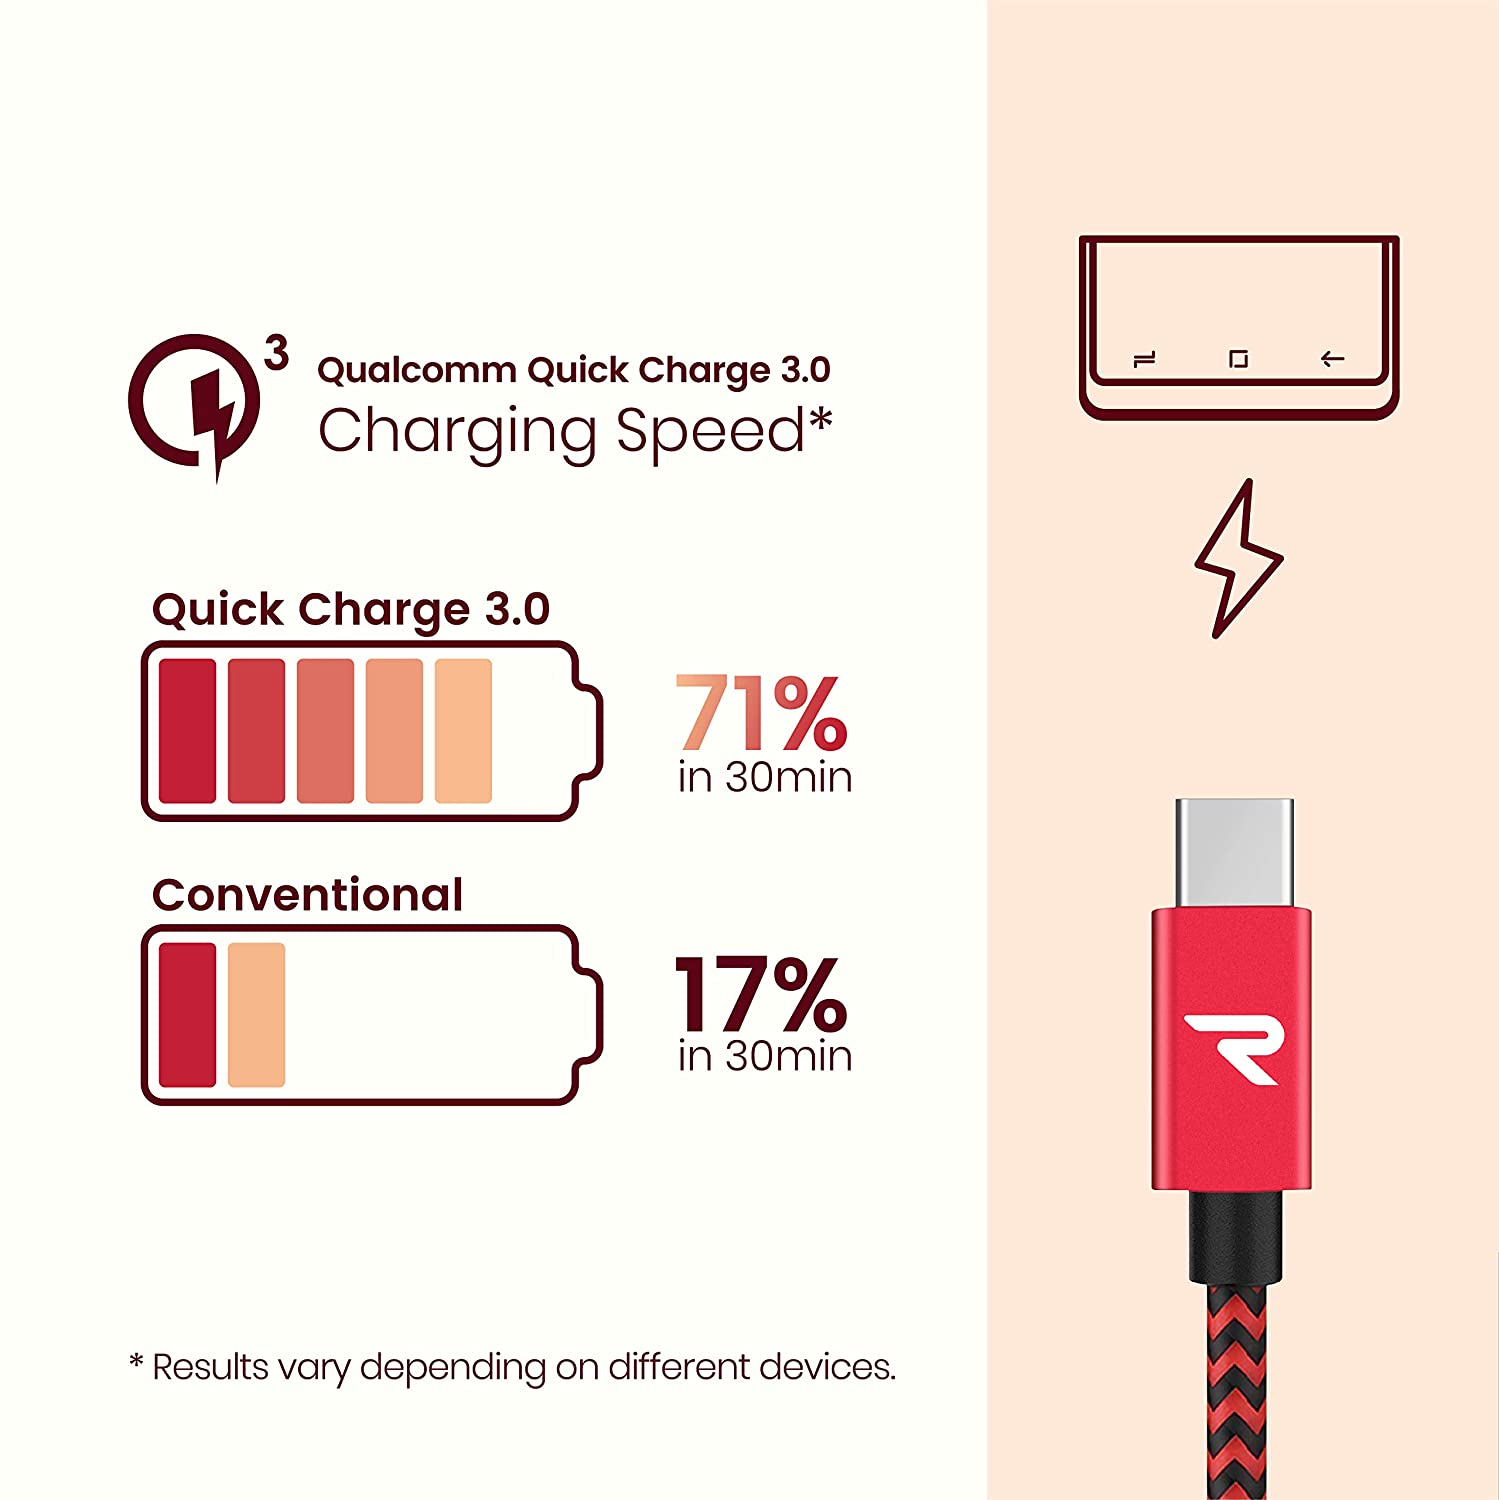 Rampow 65ft Usb C Braided Cable Certified Fast Jeffrey39s Log Mp3 Player Circuit Diagram Charging Red Qc 30 Durable Type Charger Cord Compatible With Android